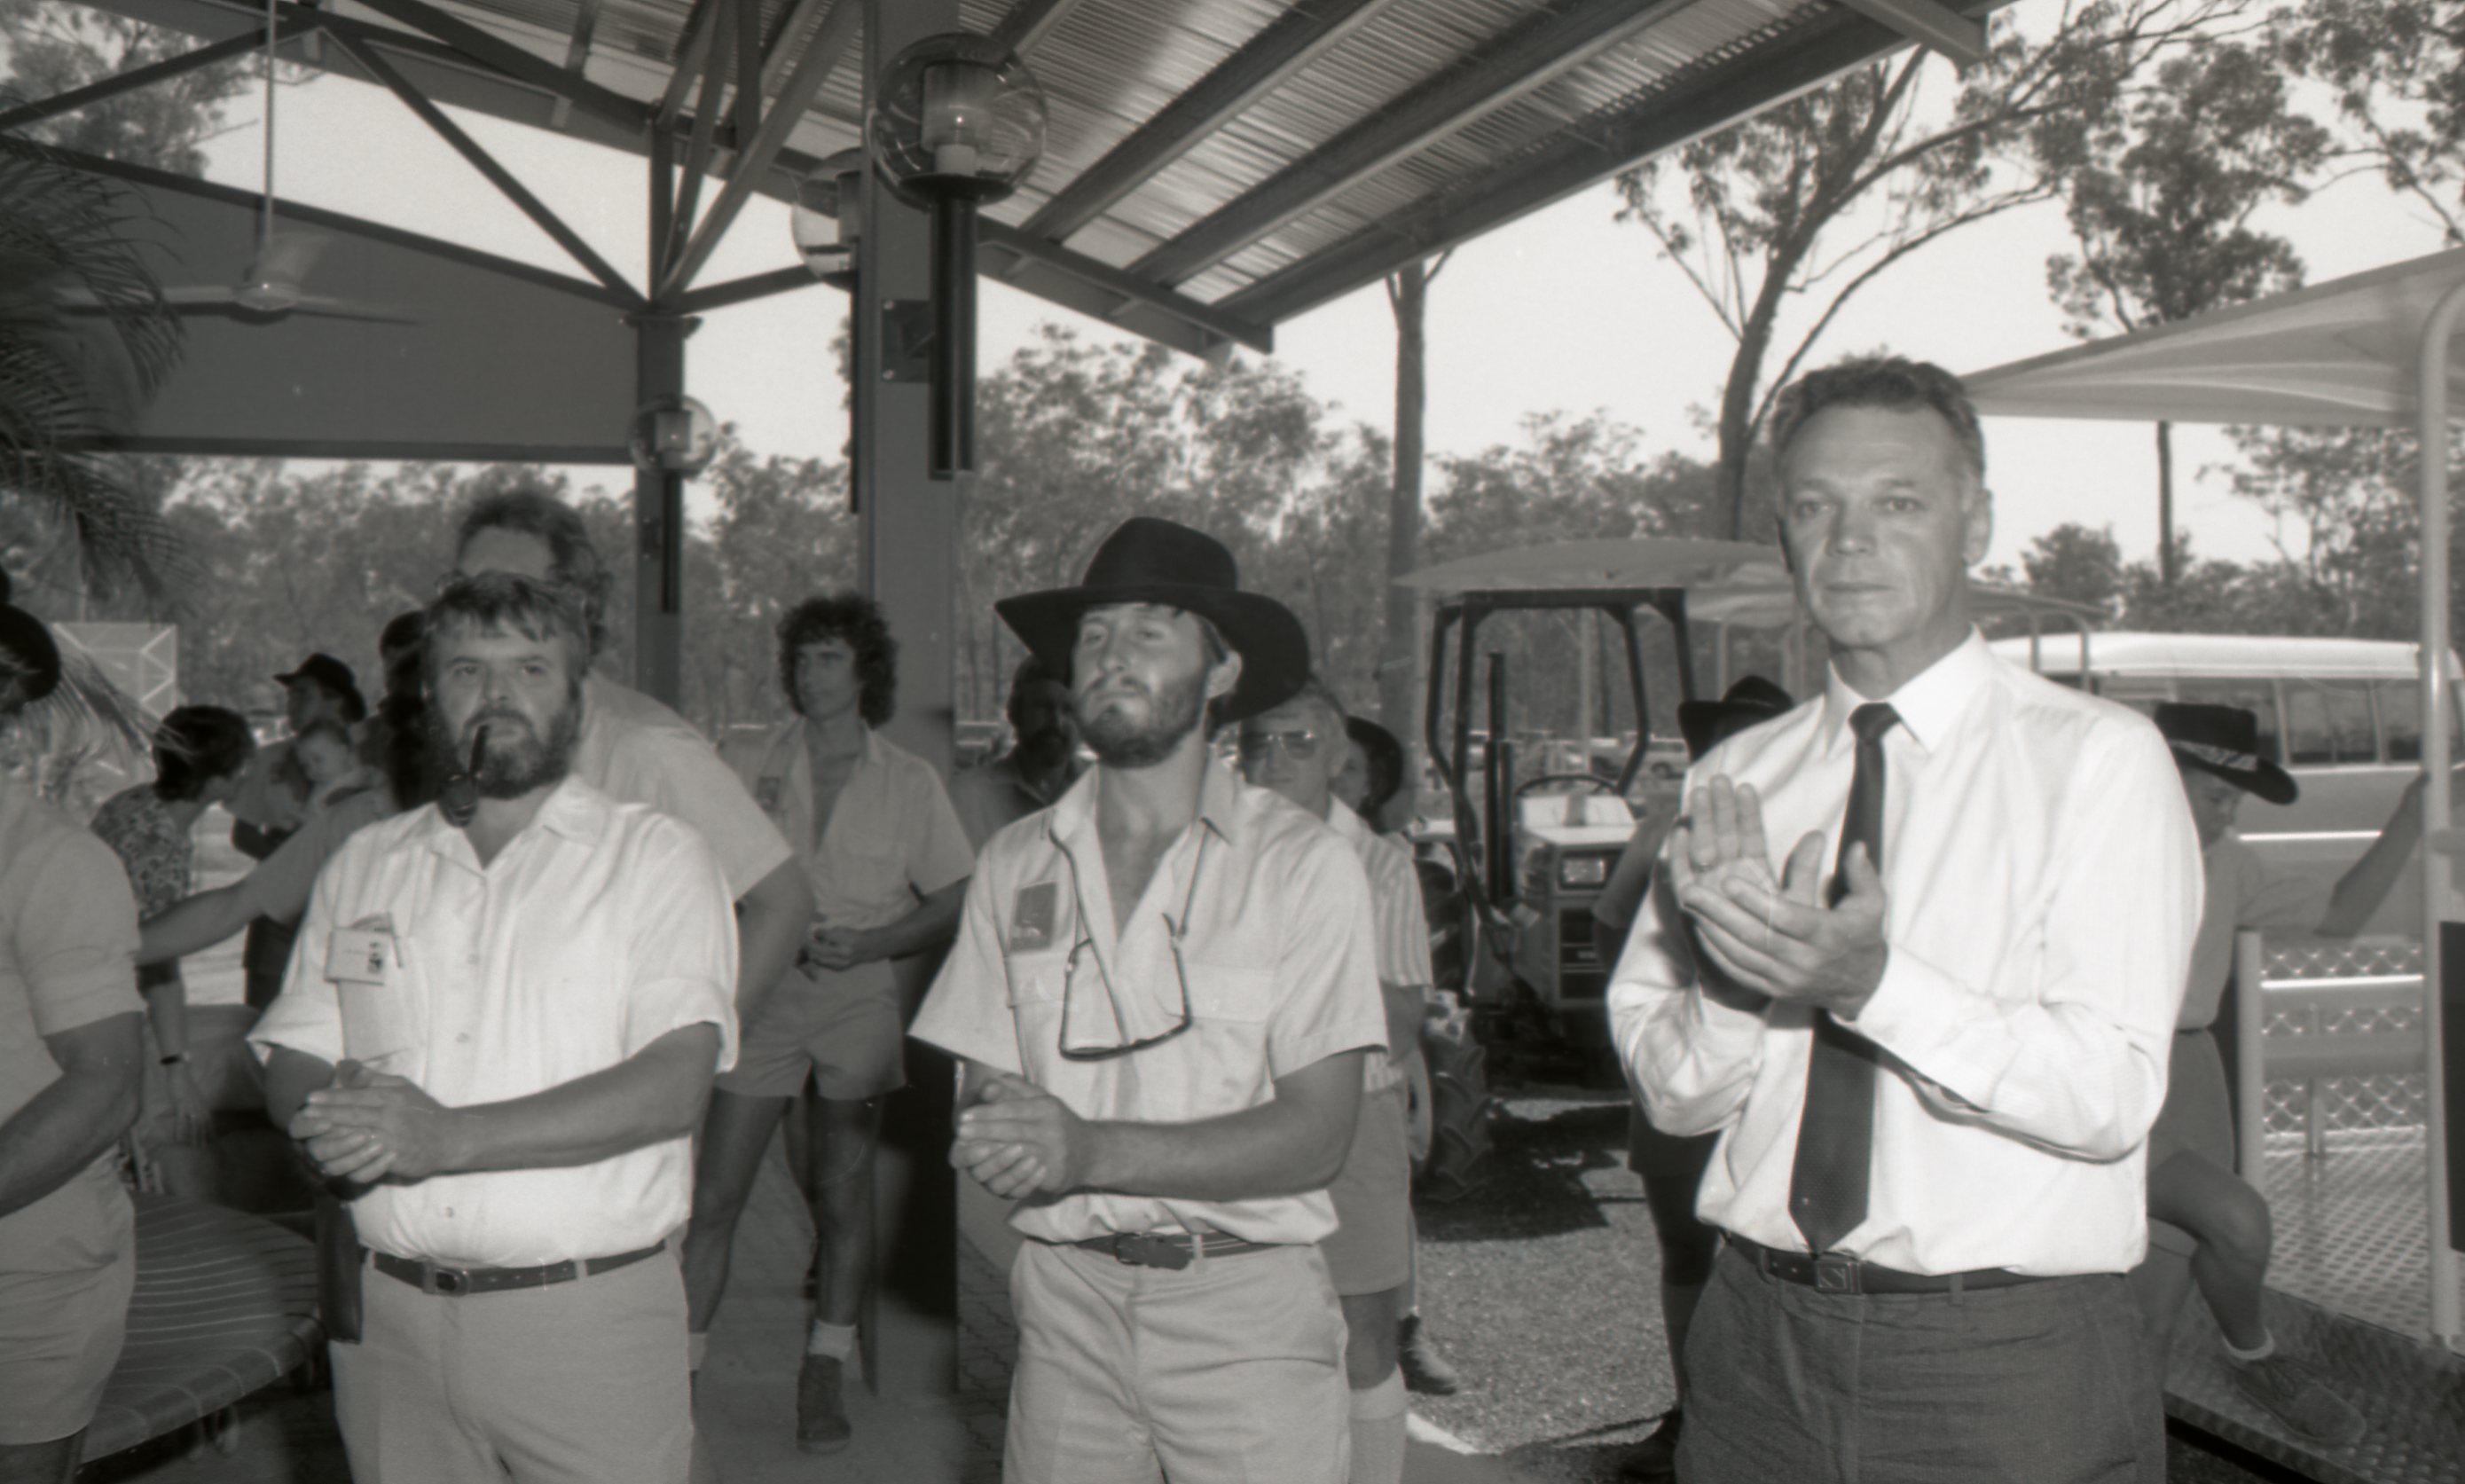 Minister Steve Hatton opens Berry Springs Wildlife Park, 28 September 1989<br />Image courtesy of Library & Archives NT,  Department of the Chief Minister, NTRS 3823 P1, Box 11, BW2855, Image 24